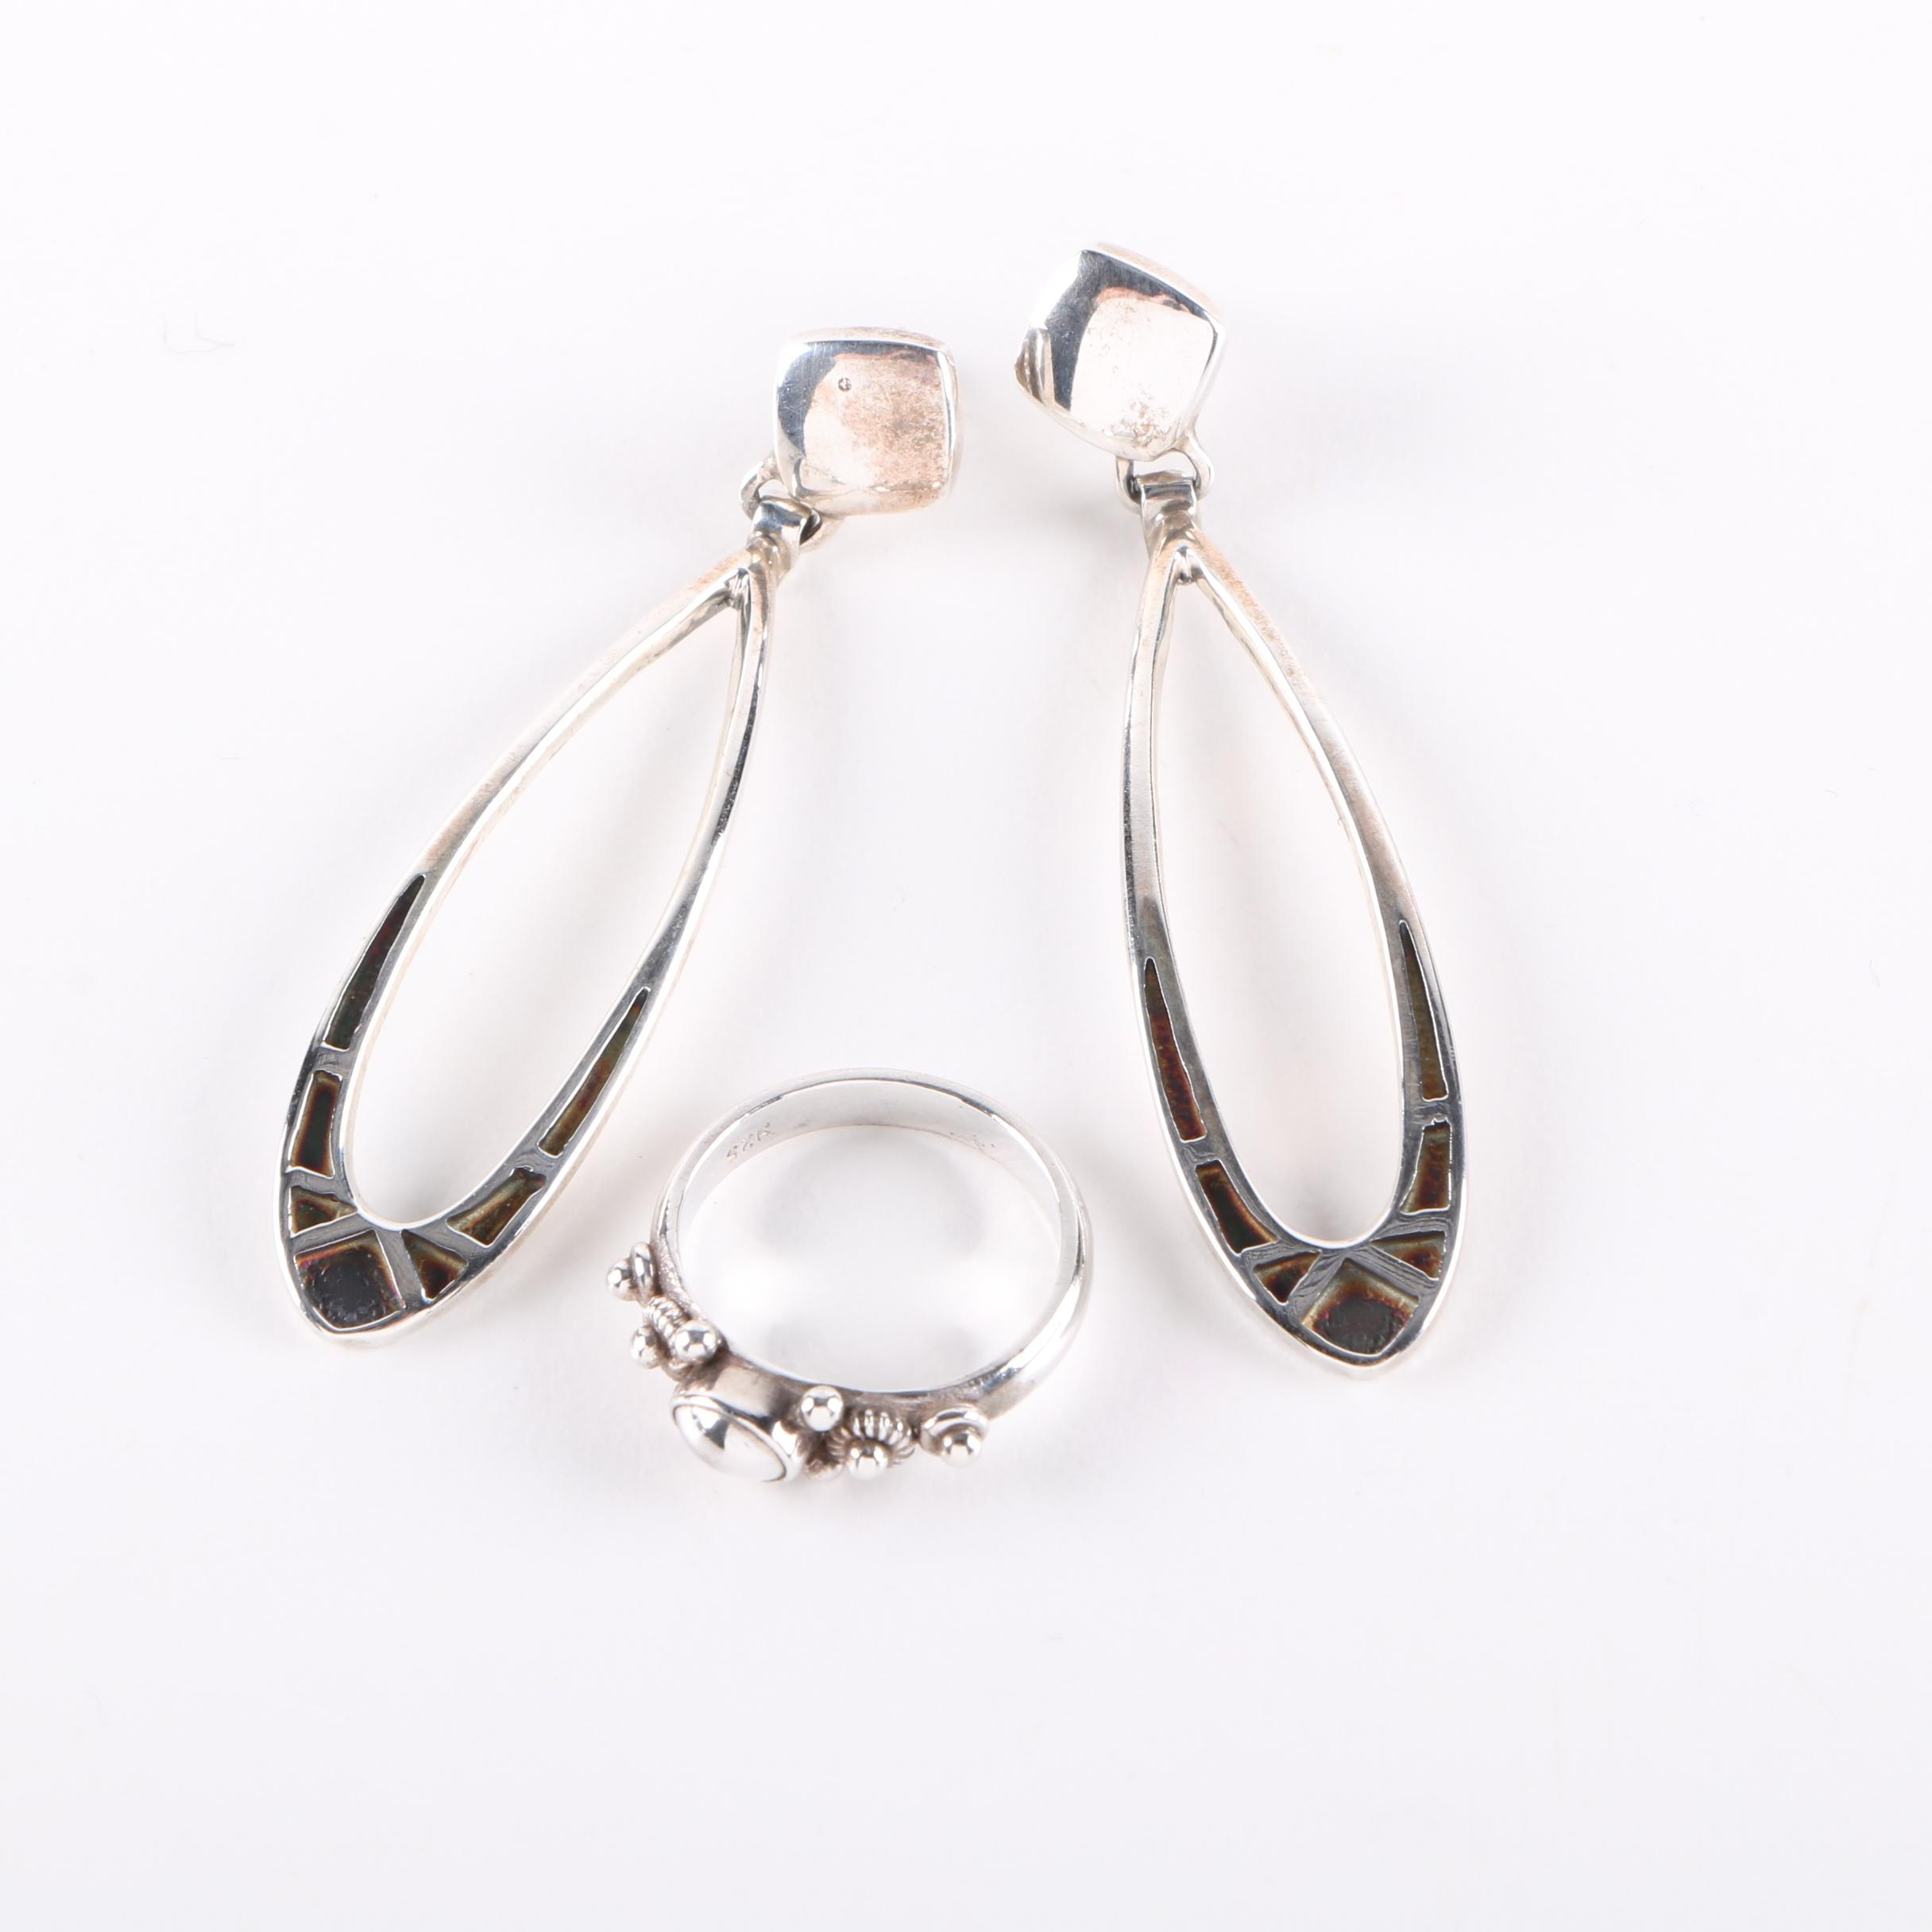 Peterson Chee Sterling Silver Drop Earrings and Unsigned Ring